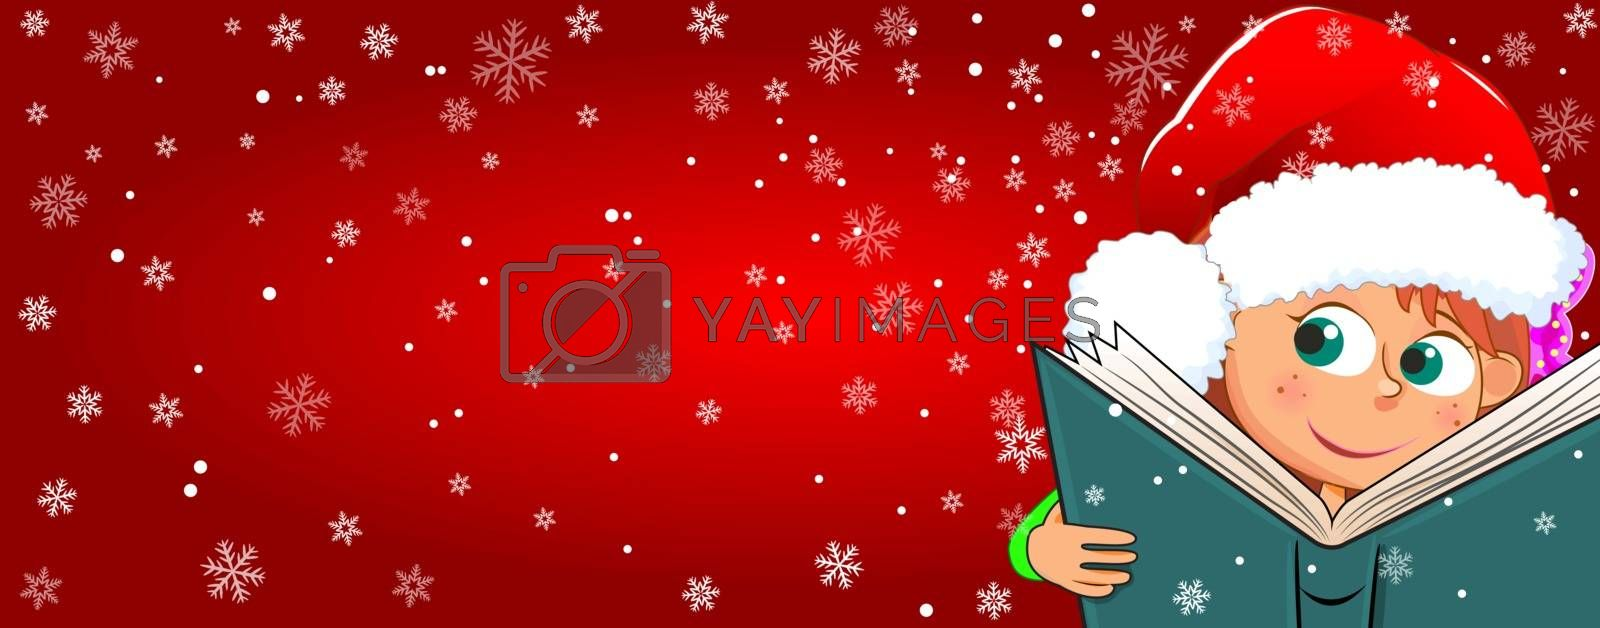 Little girl with a book on a red winter background